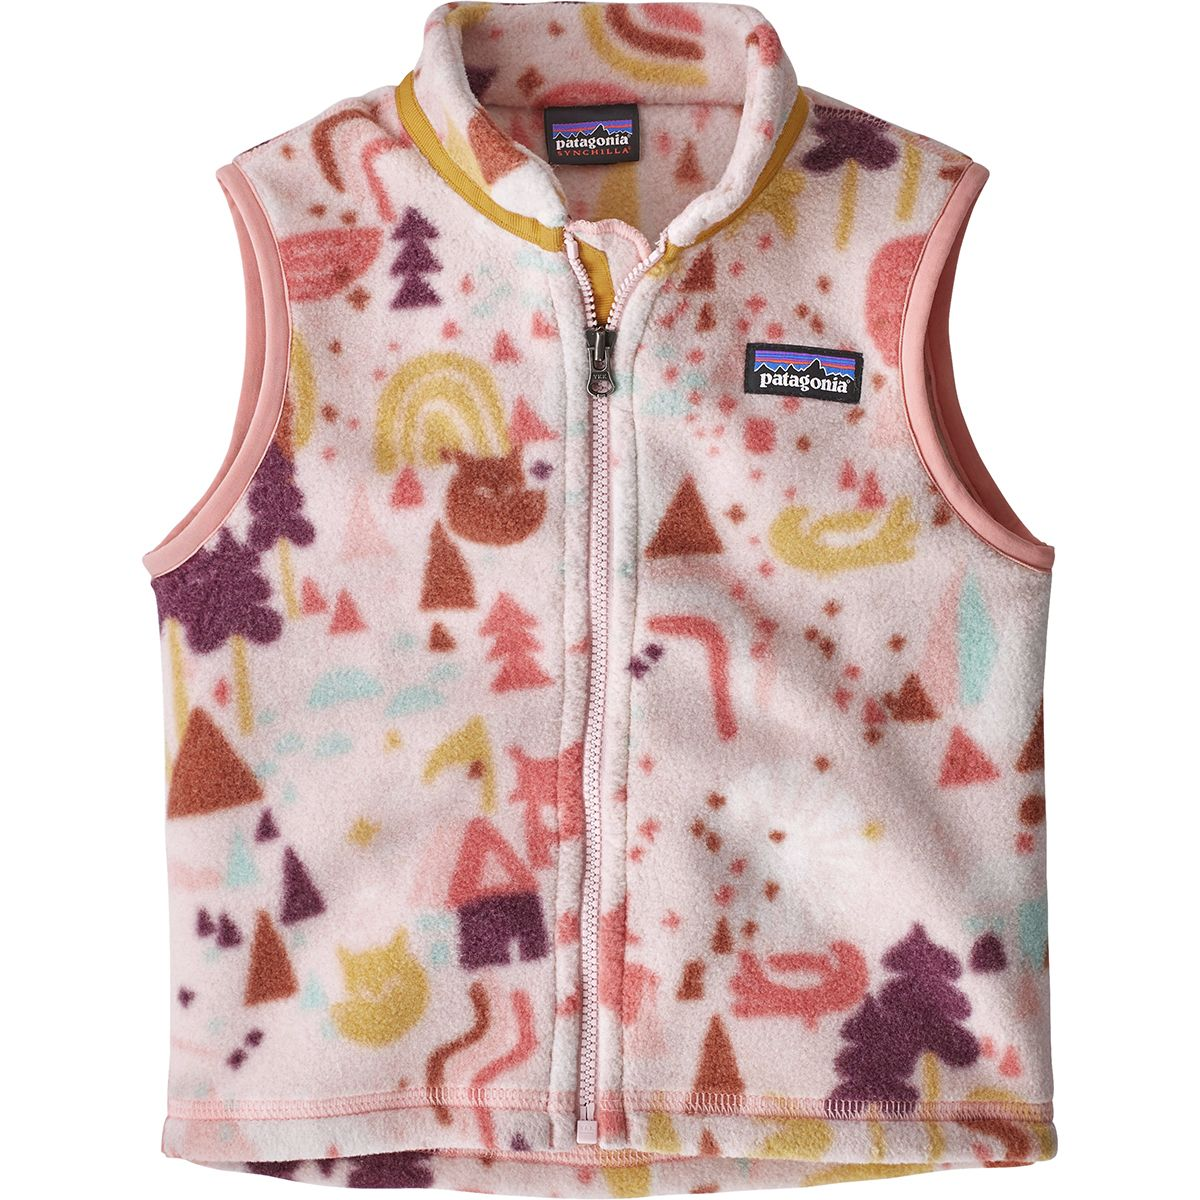 Patagonia Synchilla Vest - Toddler Girls' Block Houses One Way/Pink Opal, 2T